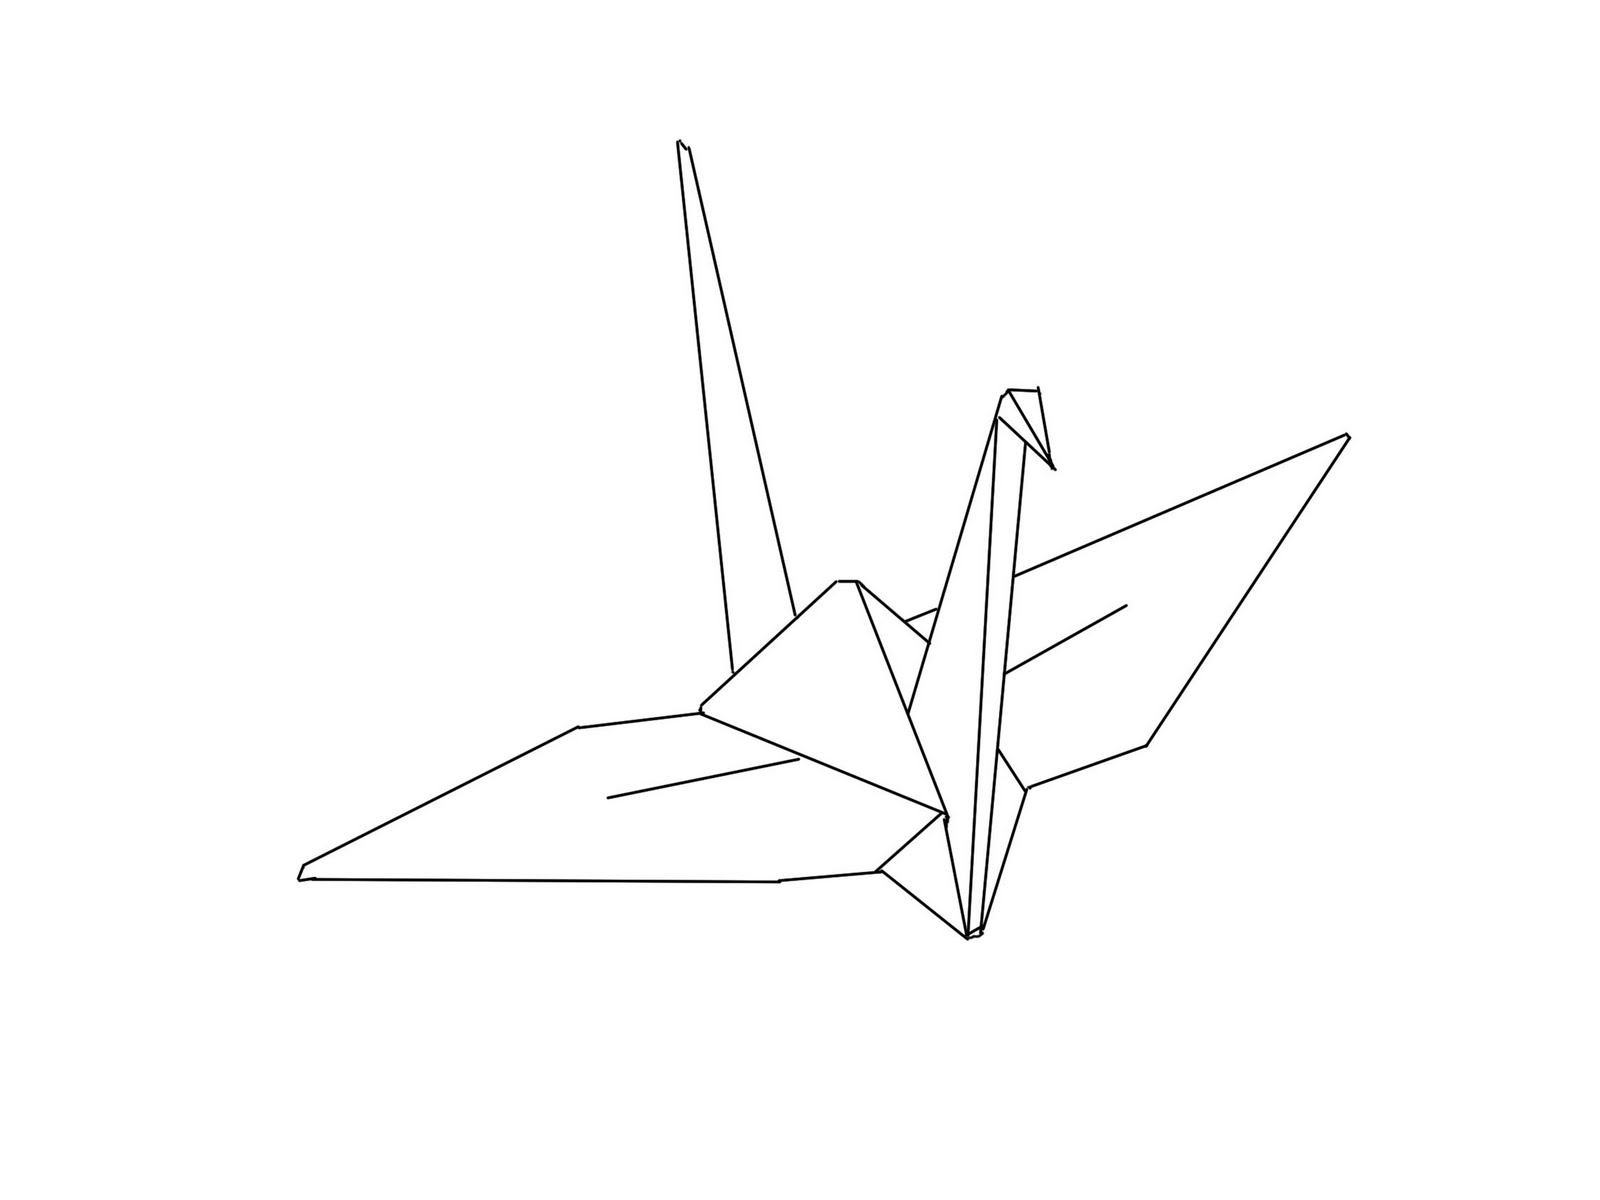 Origami Drawing At Getdrawings Com Free For Personal Use Origami